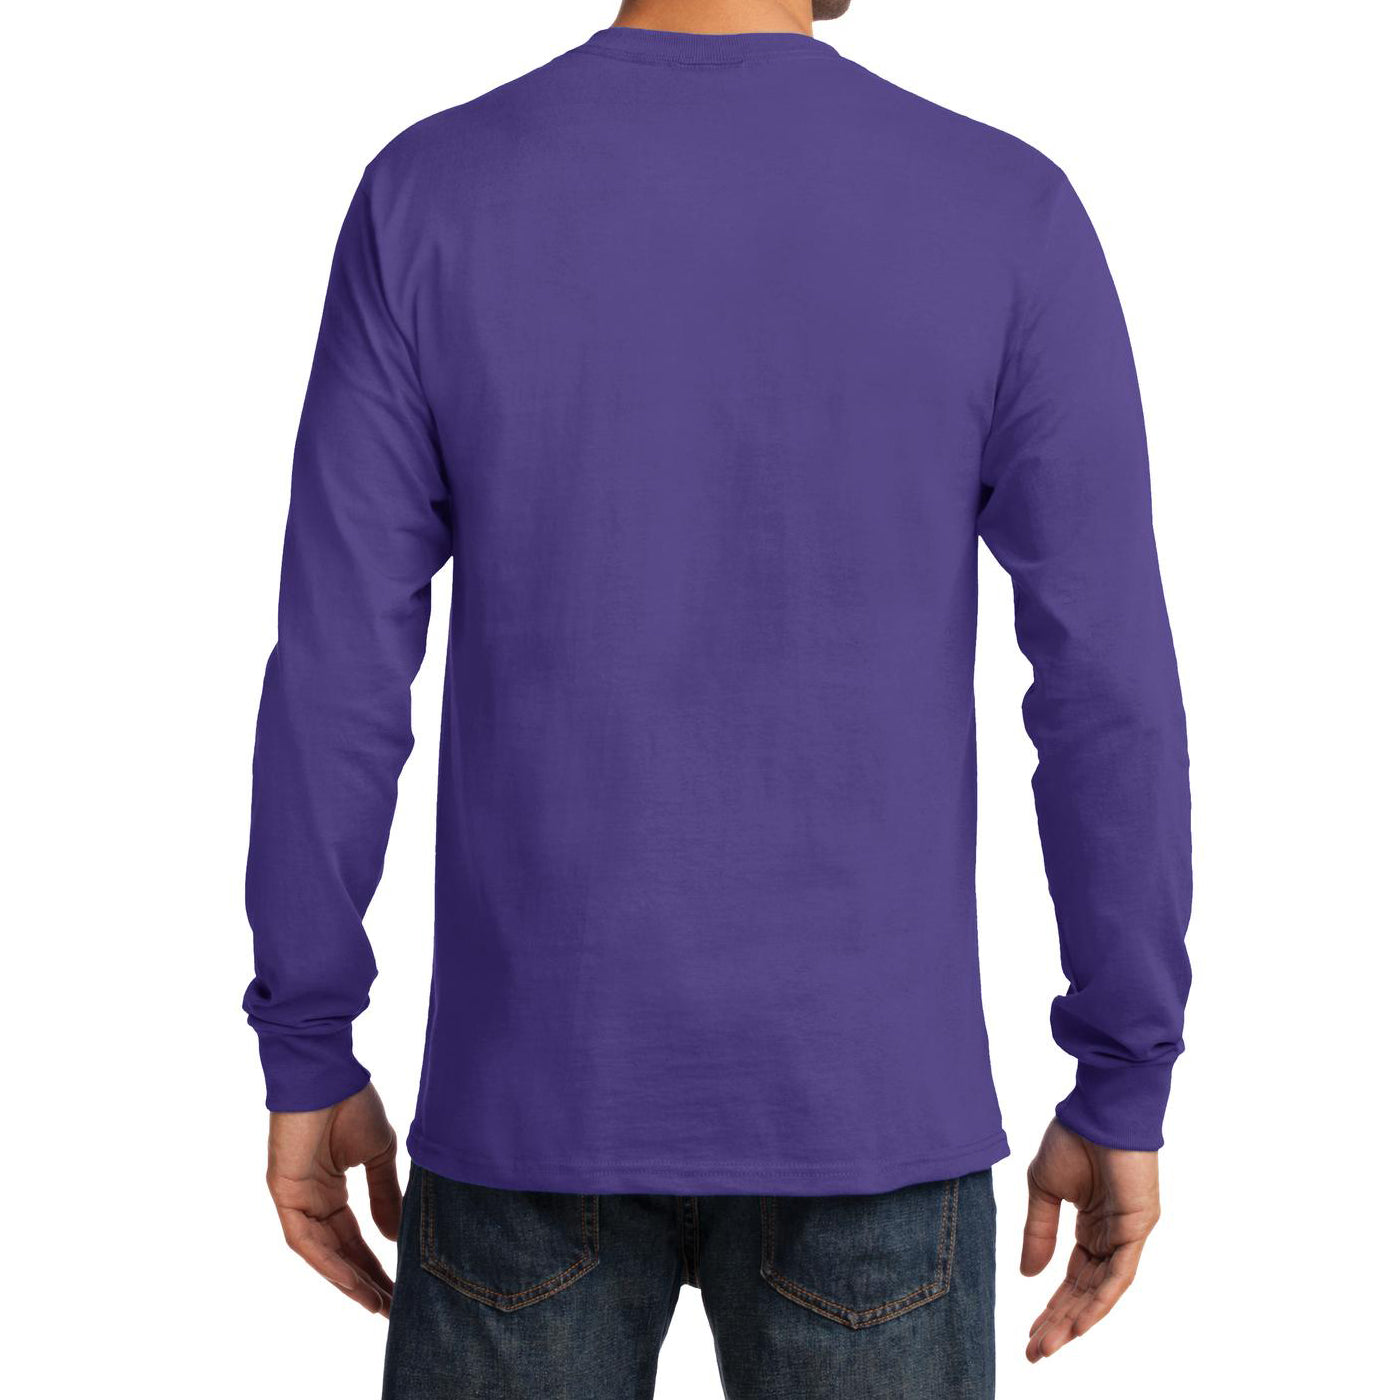 Men's Long Sleeve Essential Tee - Purple - Back